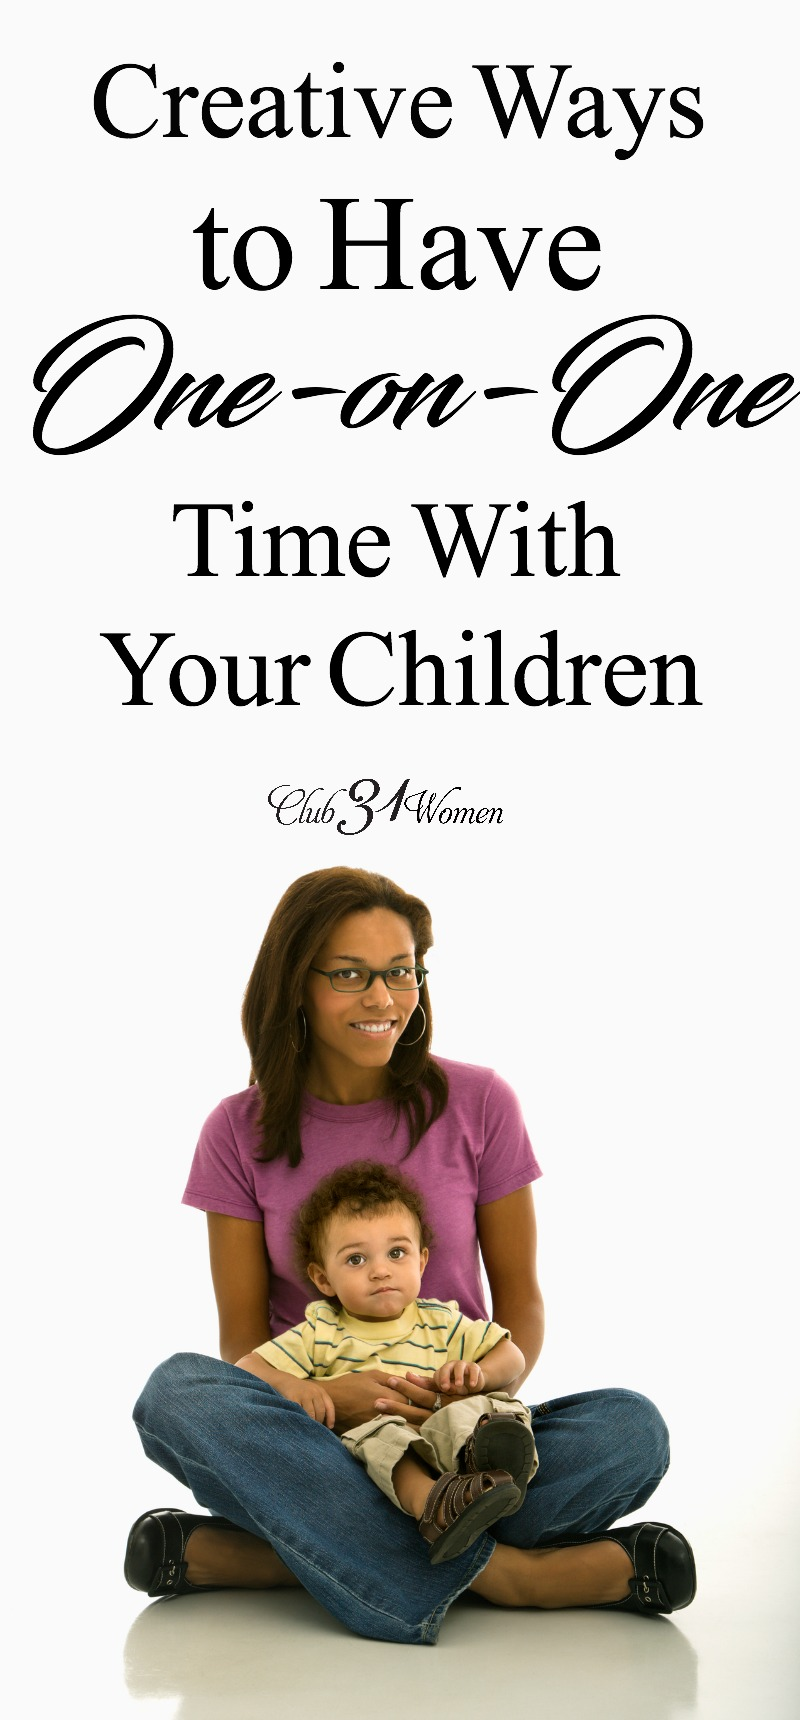 It can be challenging to set aside one-on-one time with our children. But it's important to recognize them as individuals. Here are a few ways you can... via @Club31Women